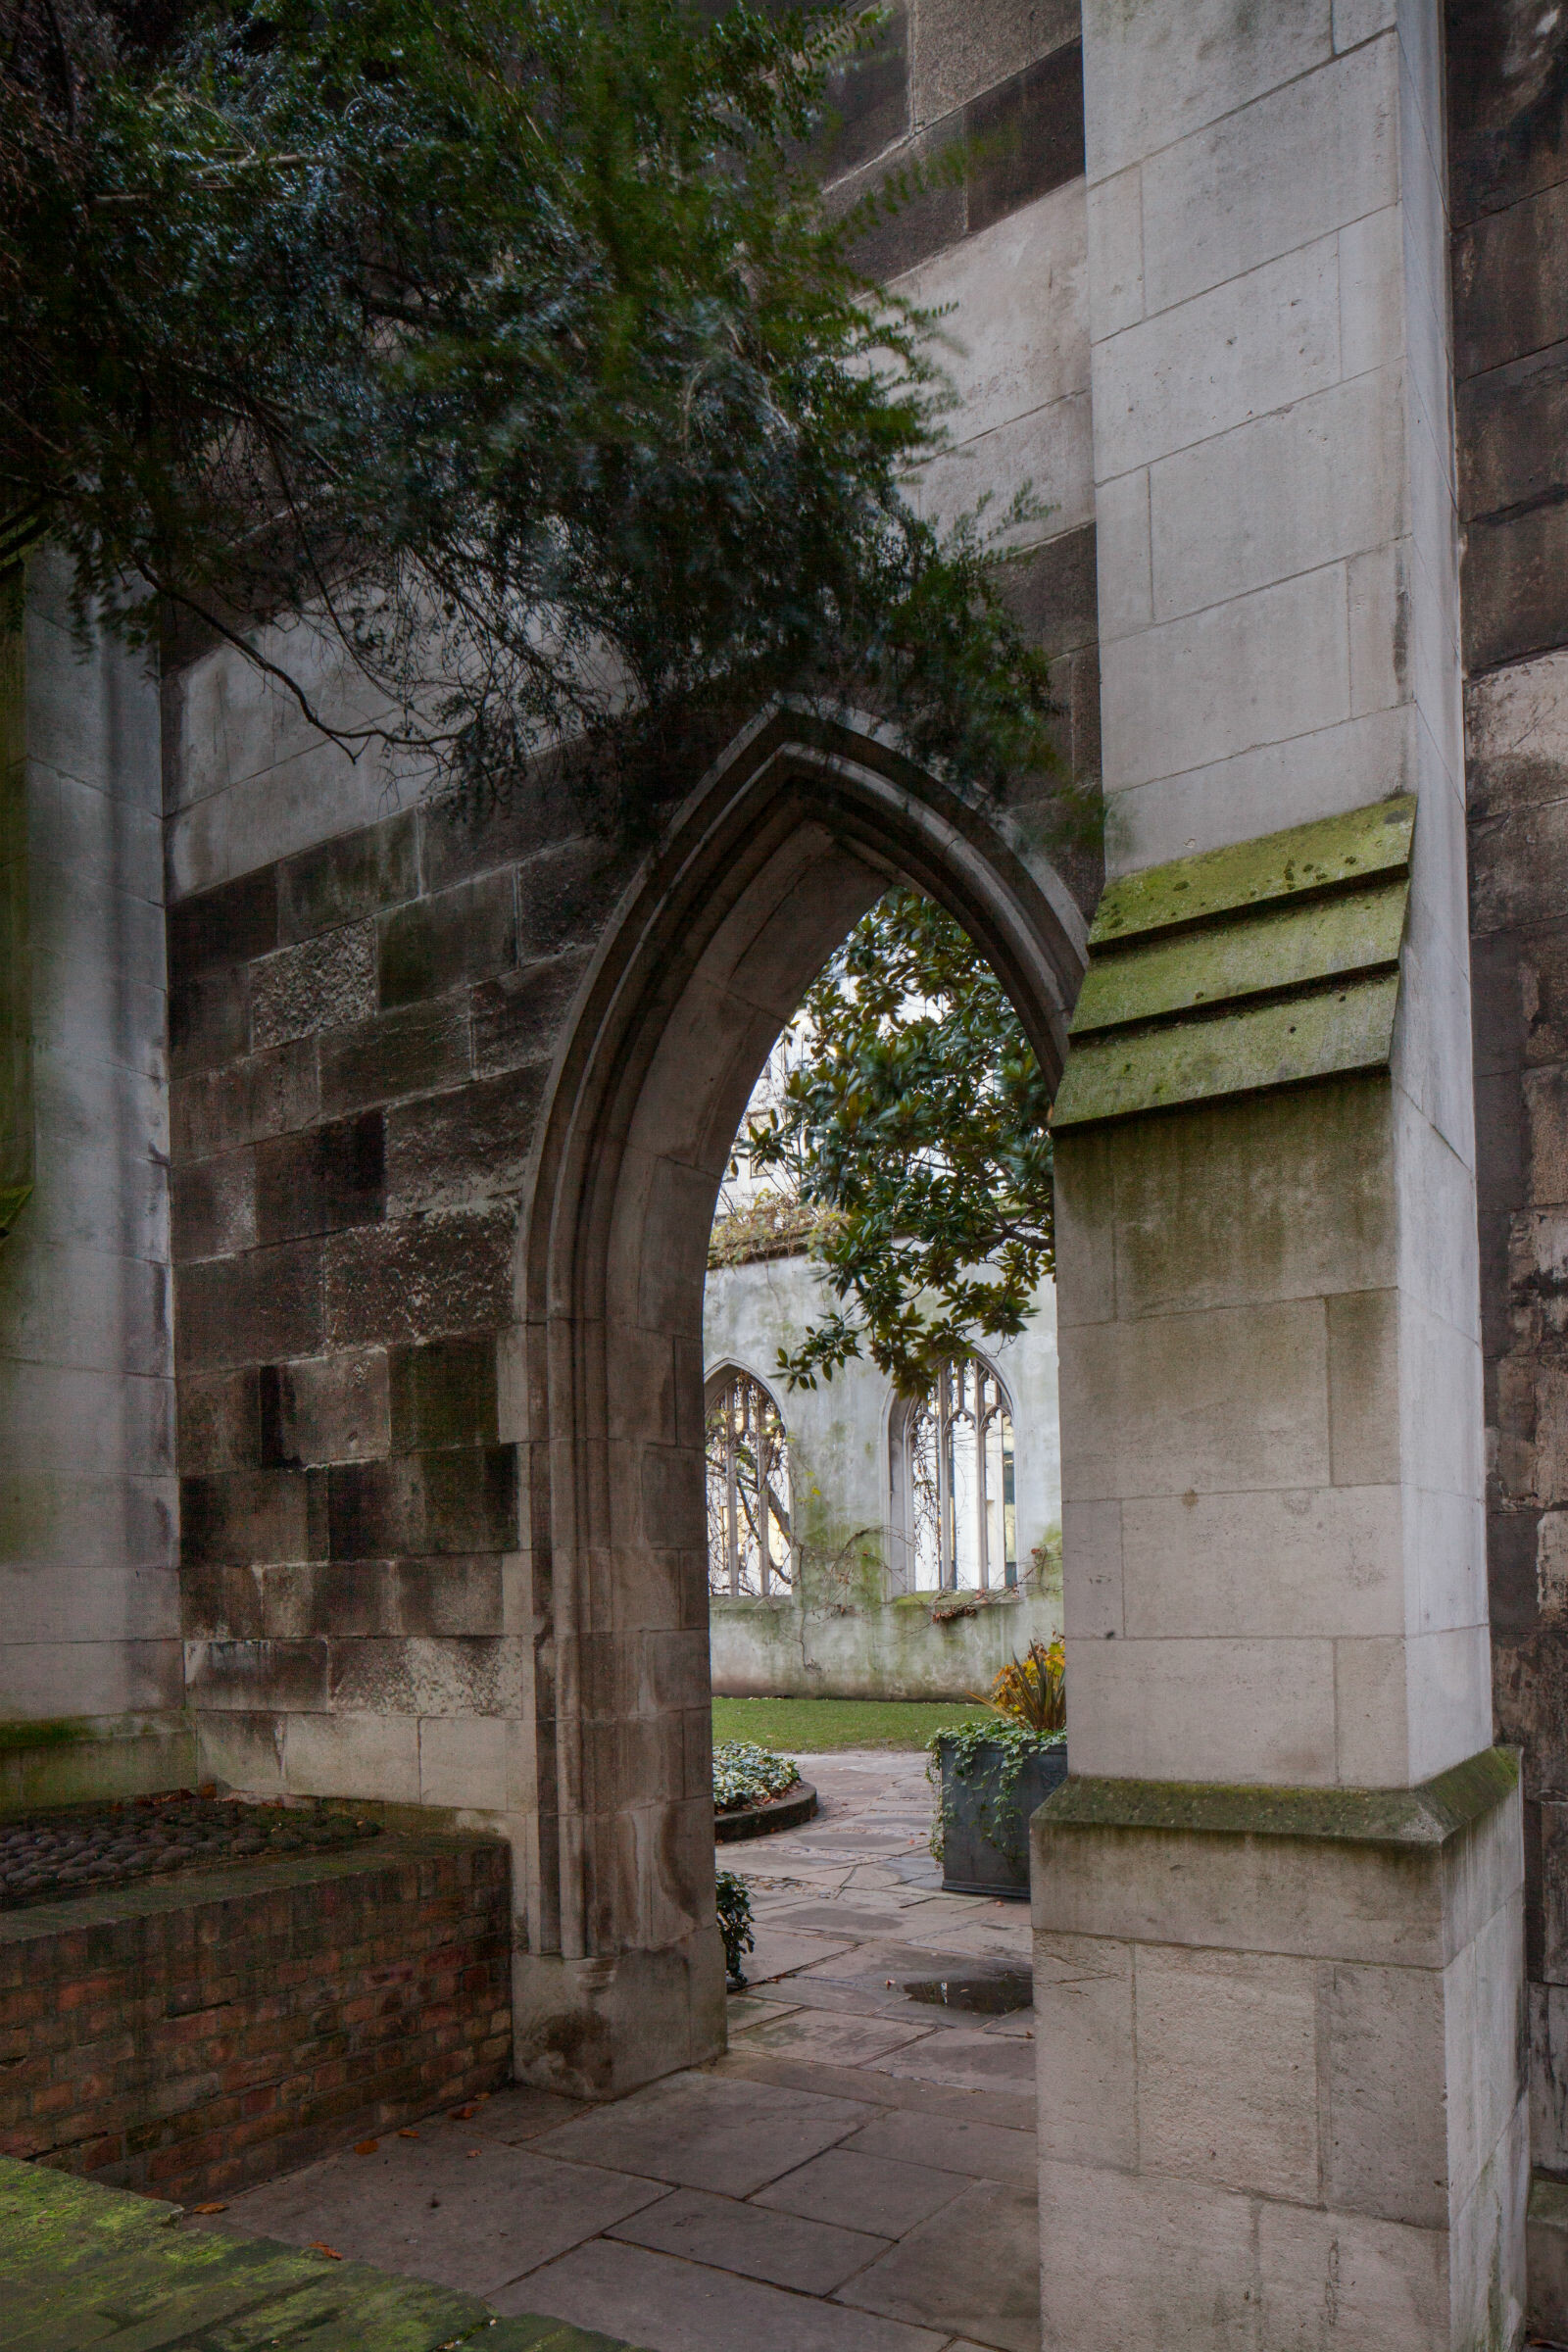 Gothic arch or doorway at  St Dunstan's church